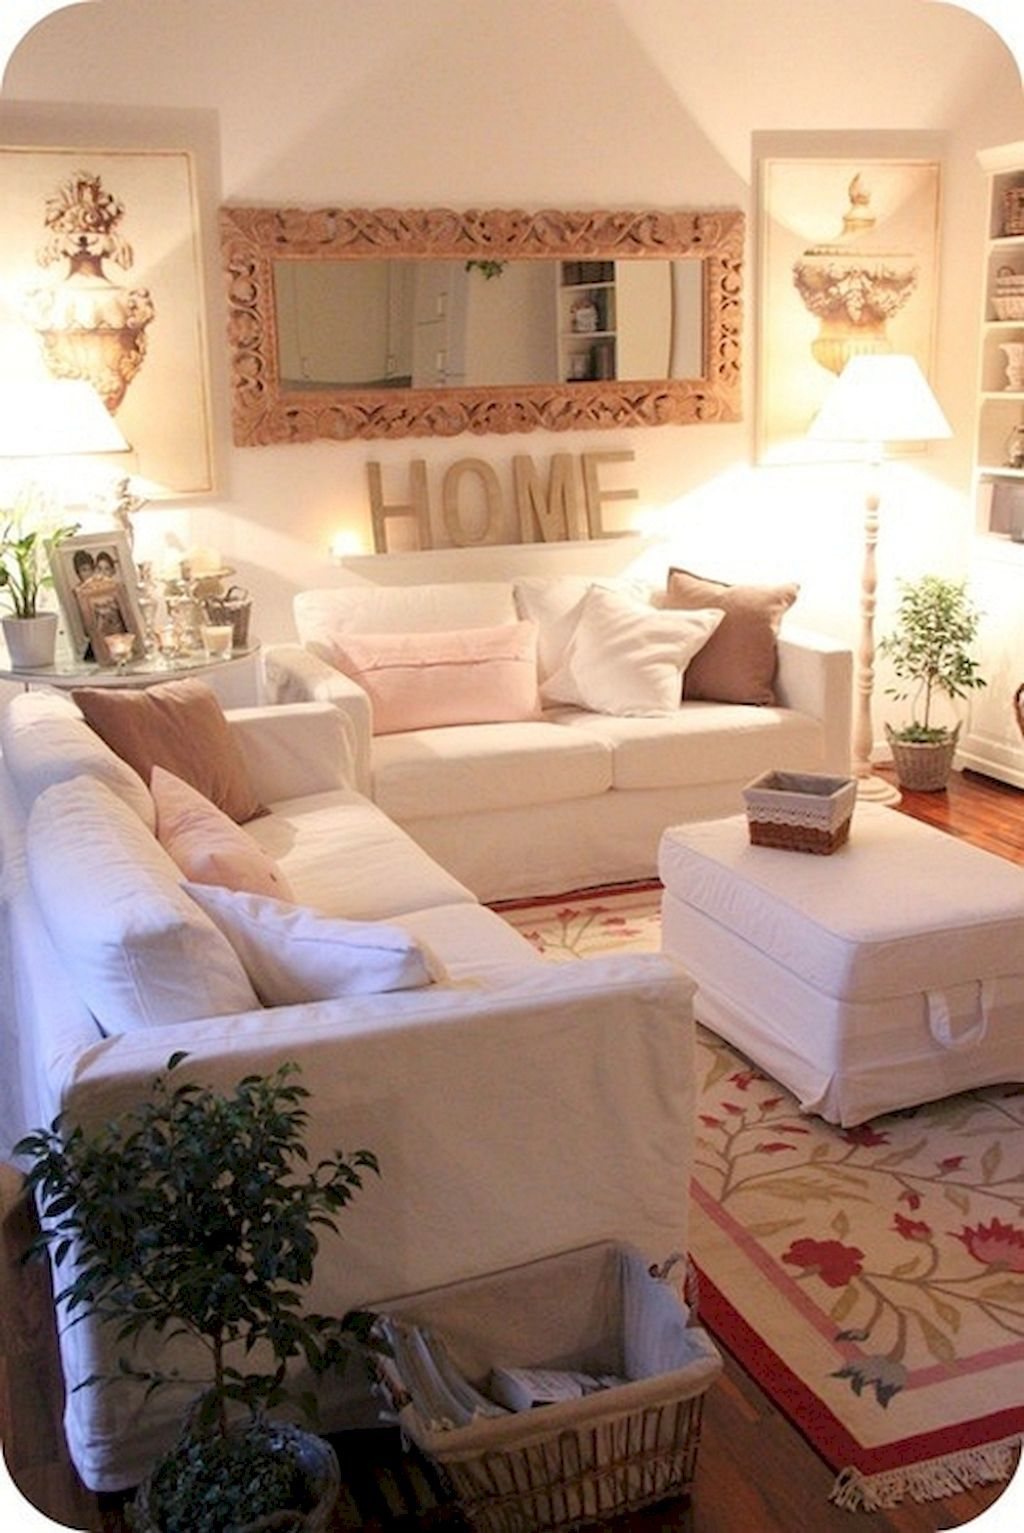 Gorgeous 55 Cozy Small Living Room Decor Ideas On A Budget Https Insidecorate Com 5 Small Apartment Living Room Small Living Room Decor Apartment Living Room